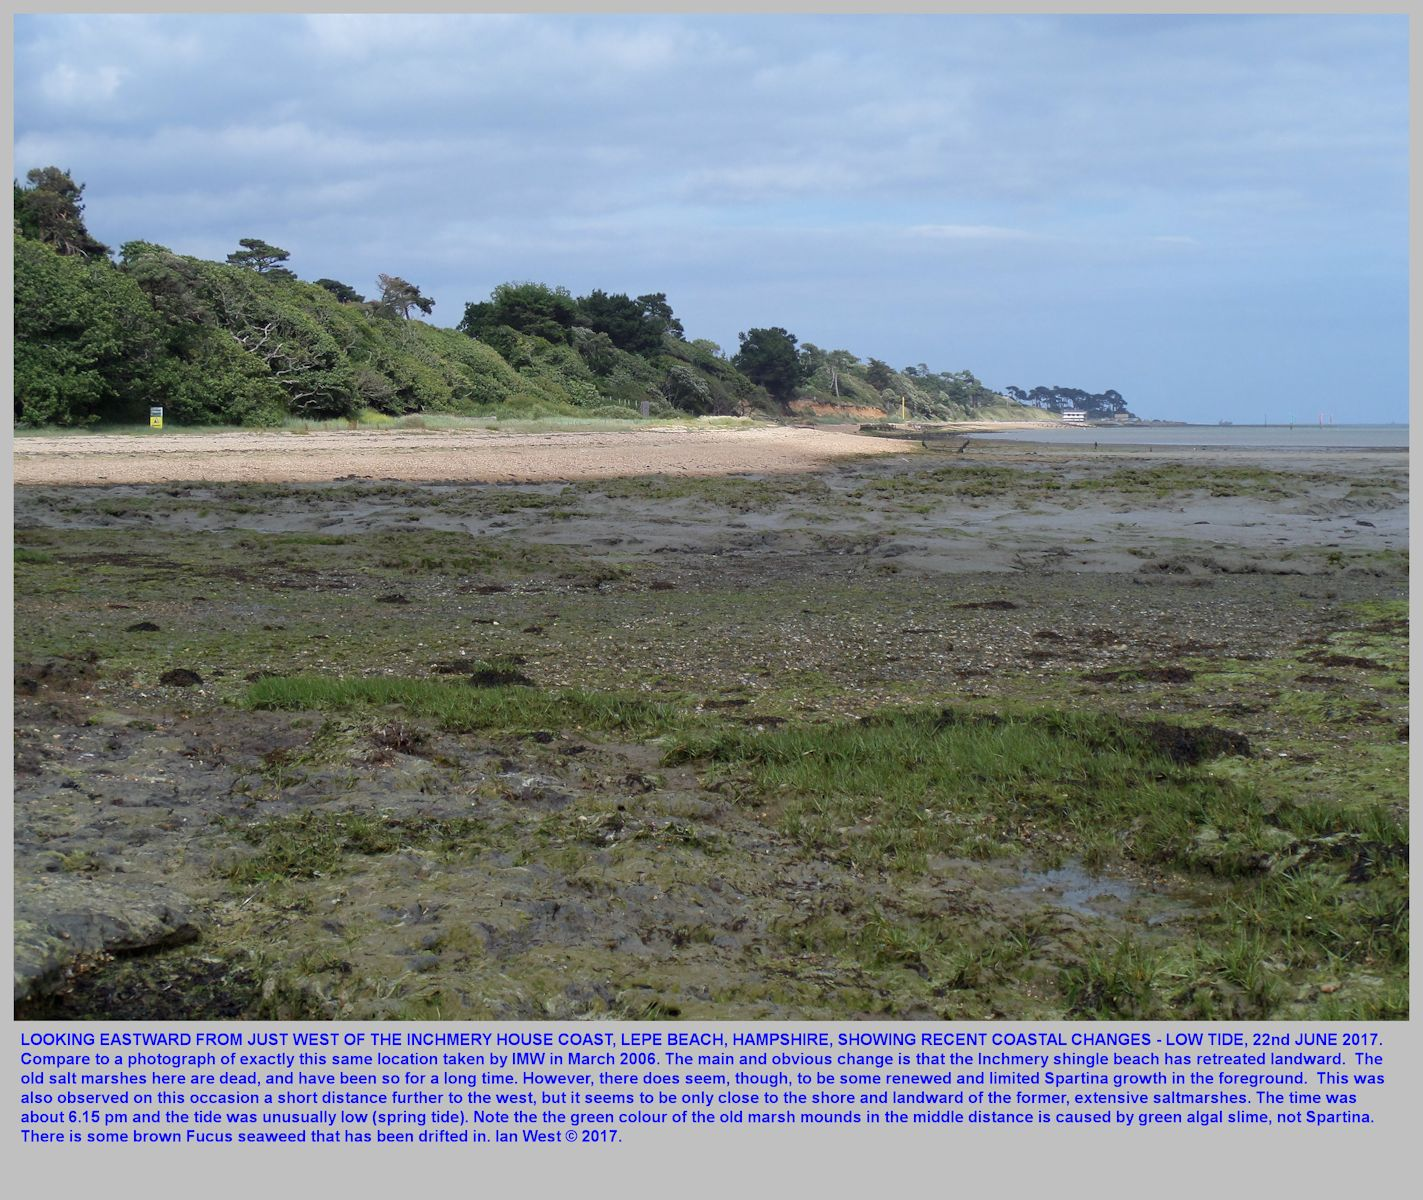 Looking eastward at the now-depleted, Inchmery Shingle Beach, near Lepe Beach, Hampshire, 22nd June 2017